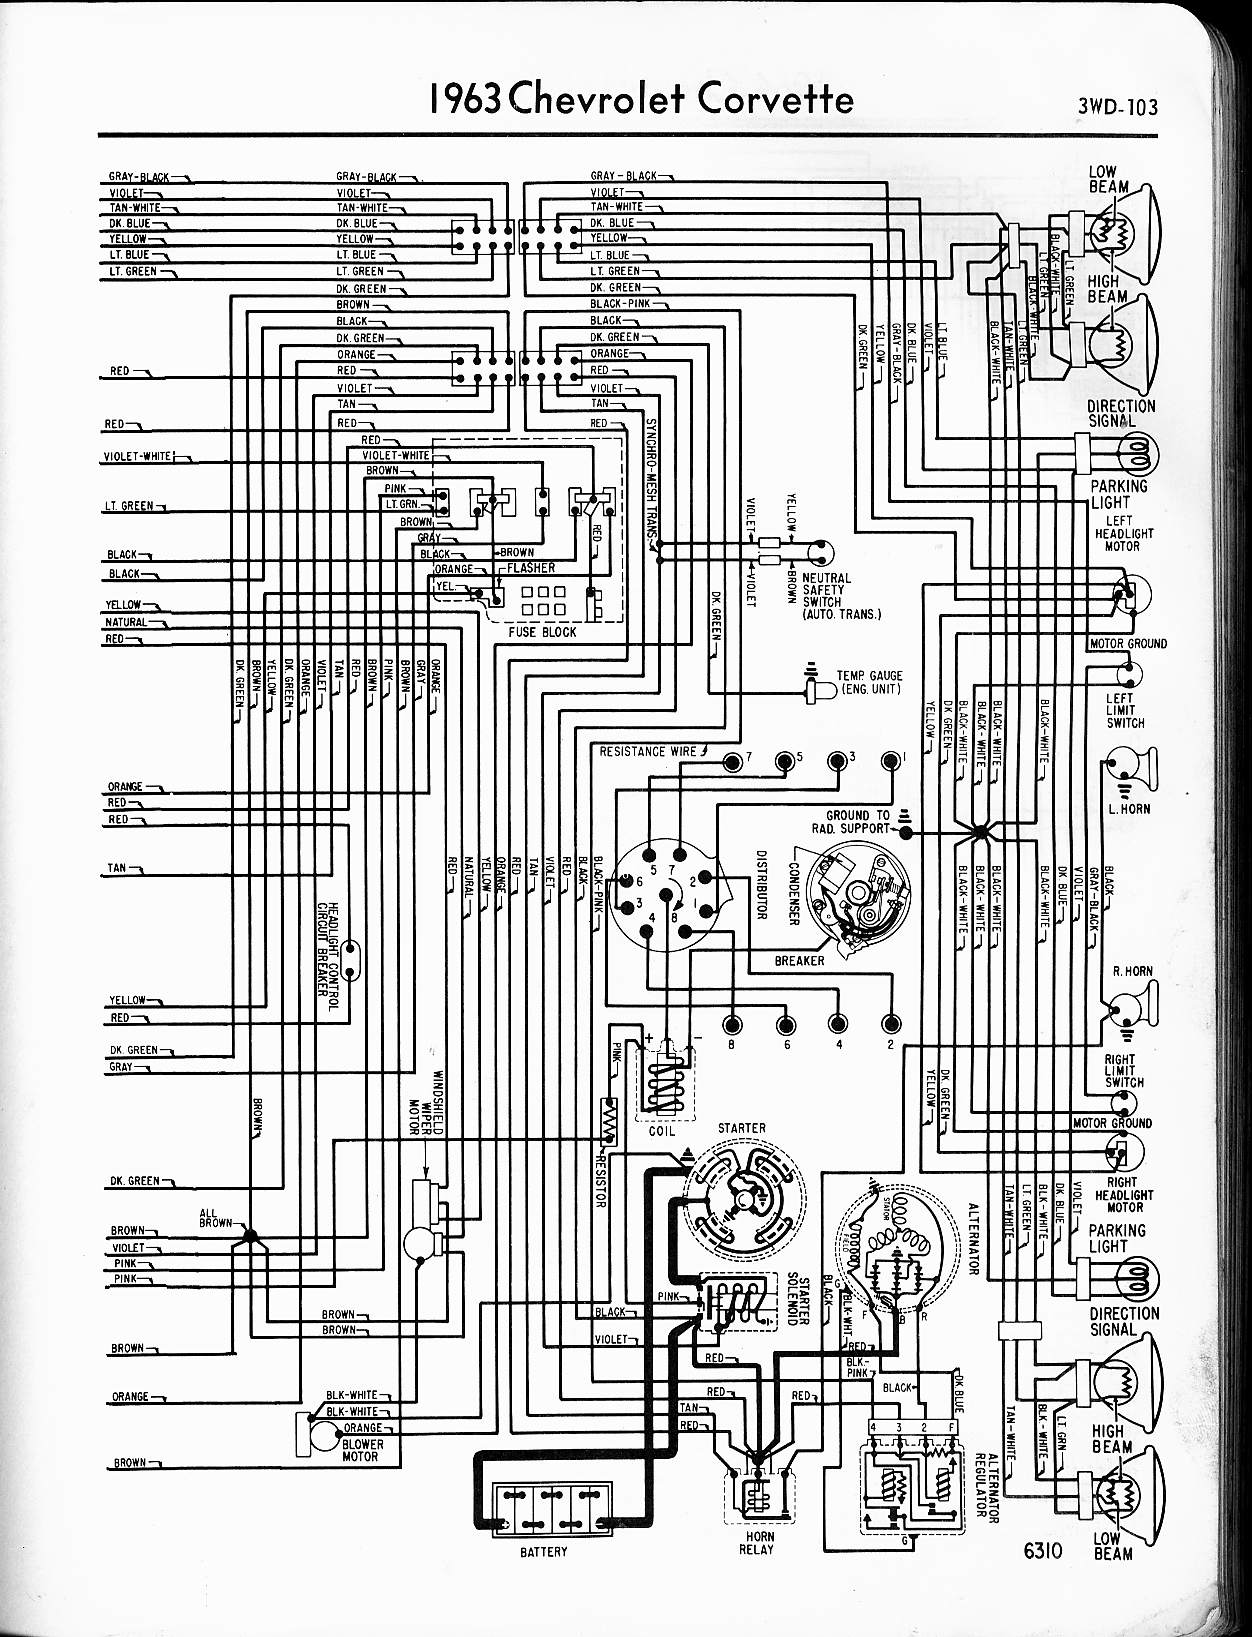 65 Corvette Dash Wiring Diagram - 2003 Jeep Tj Wiring Diagram - wiring- wiring.yenpancane.jeanjaures37.fr | 1965 Corvette Instrument Wiring Diagram |  | Wiring Diagram Resource